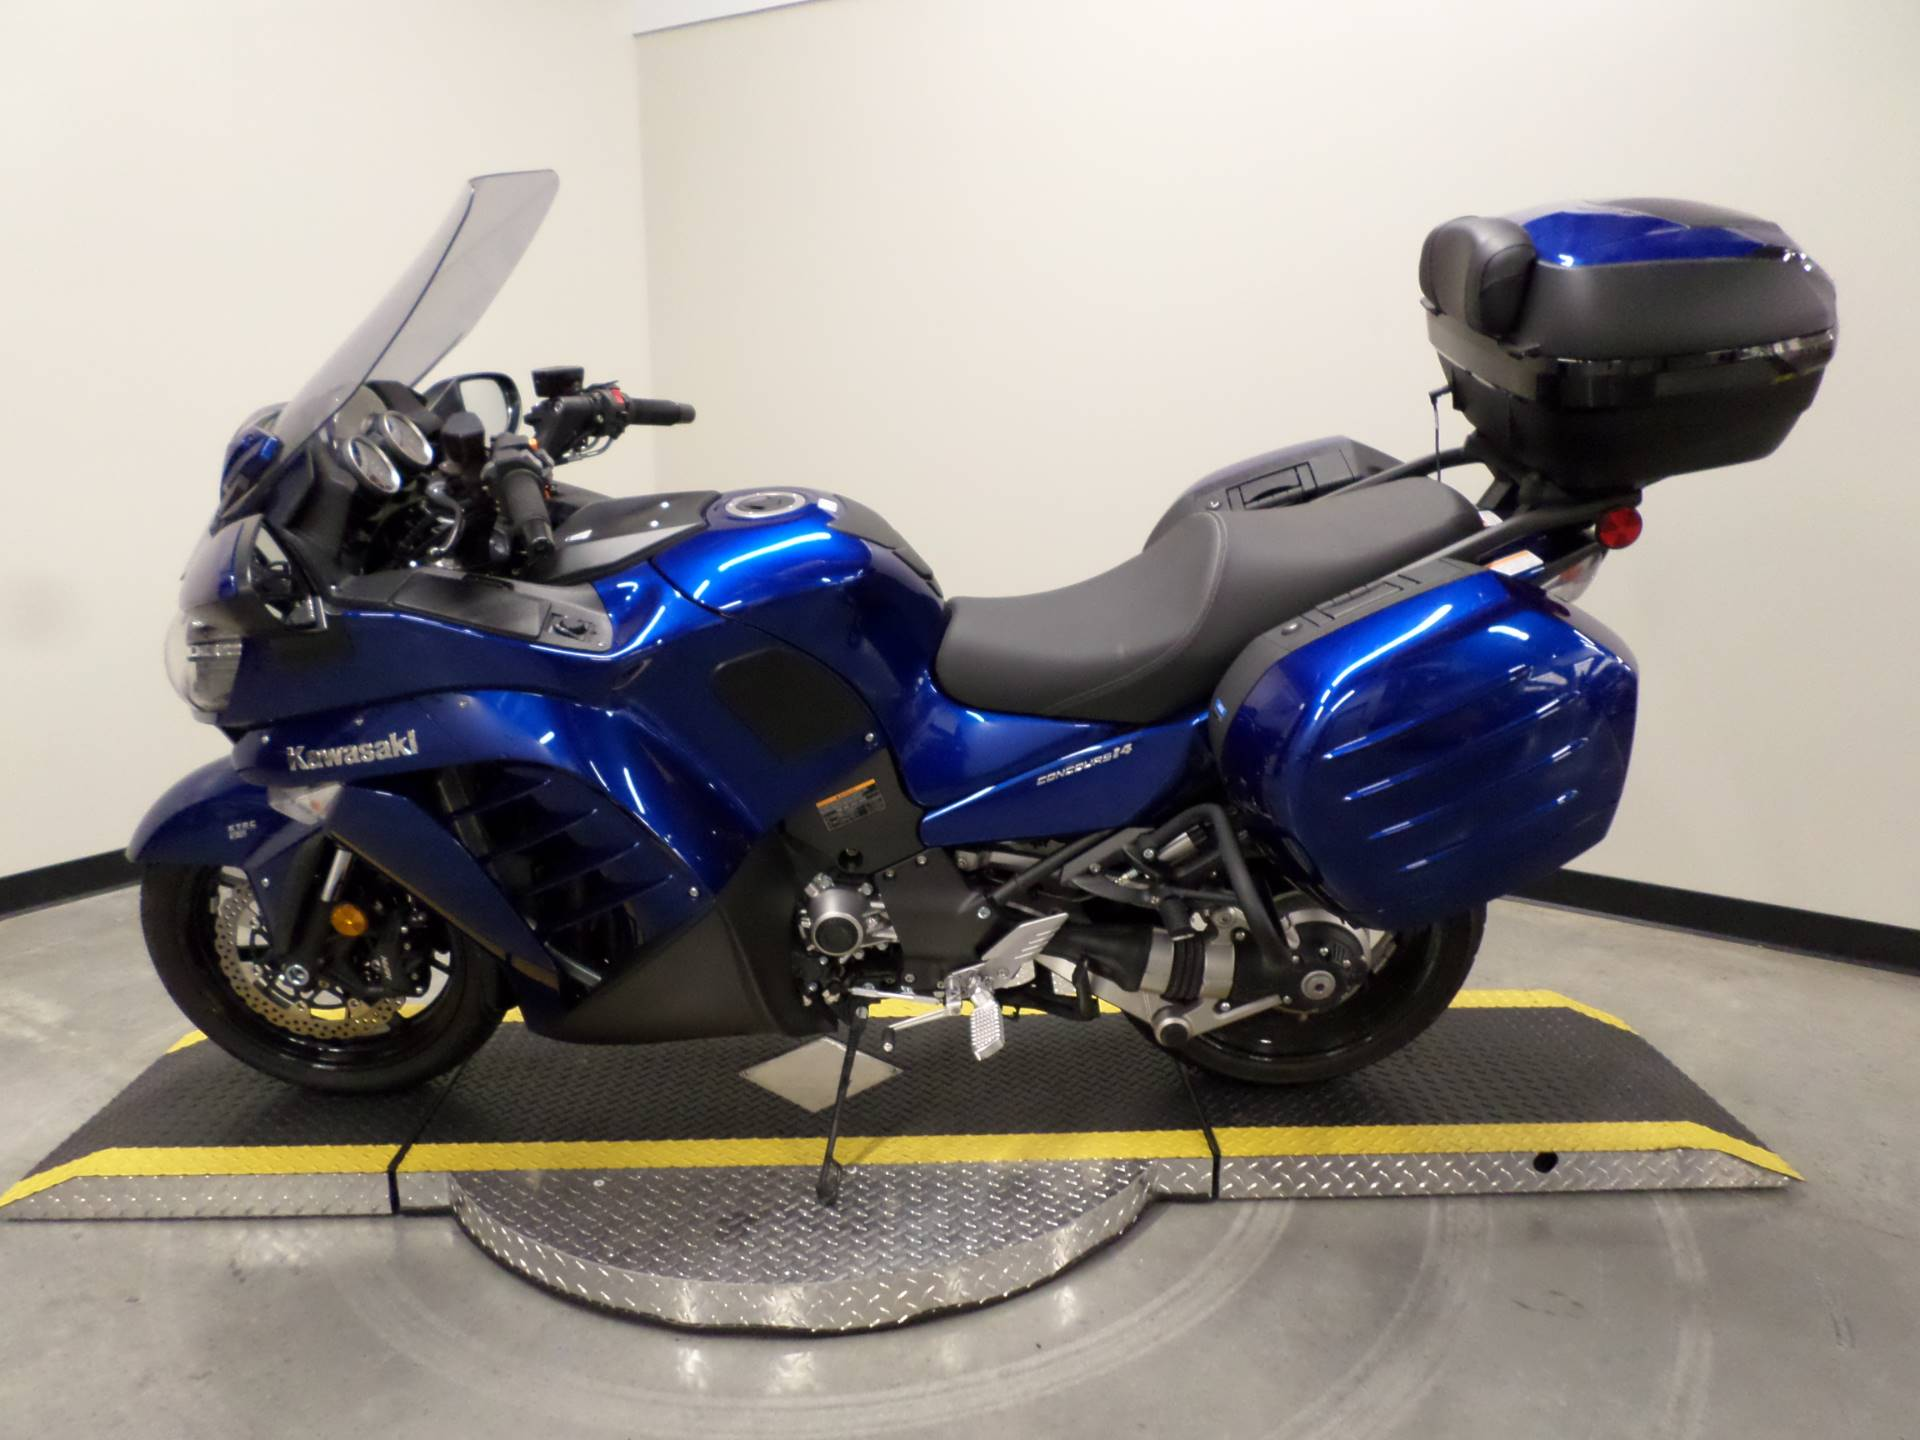 2017 Kawasaki Concours 14 ABS in Fort Worth, Texas - Photo 1